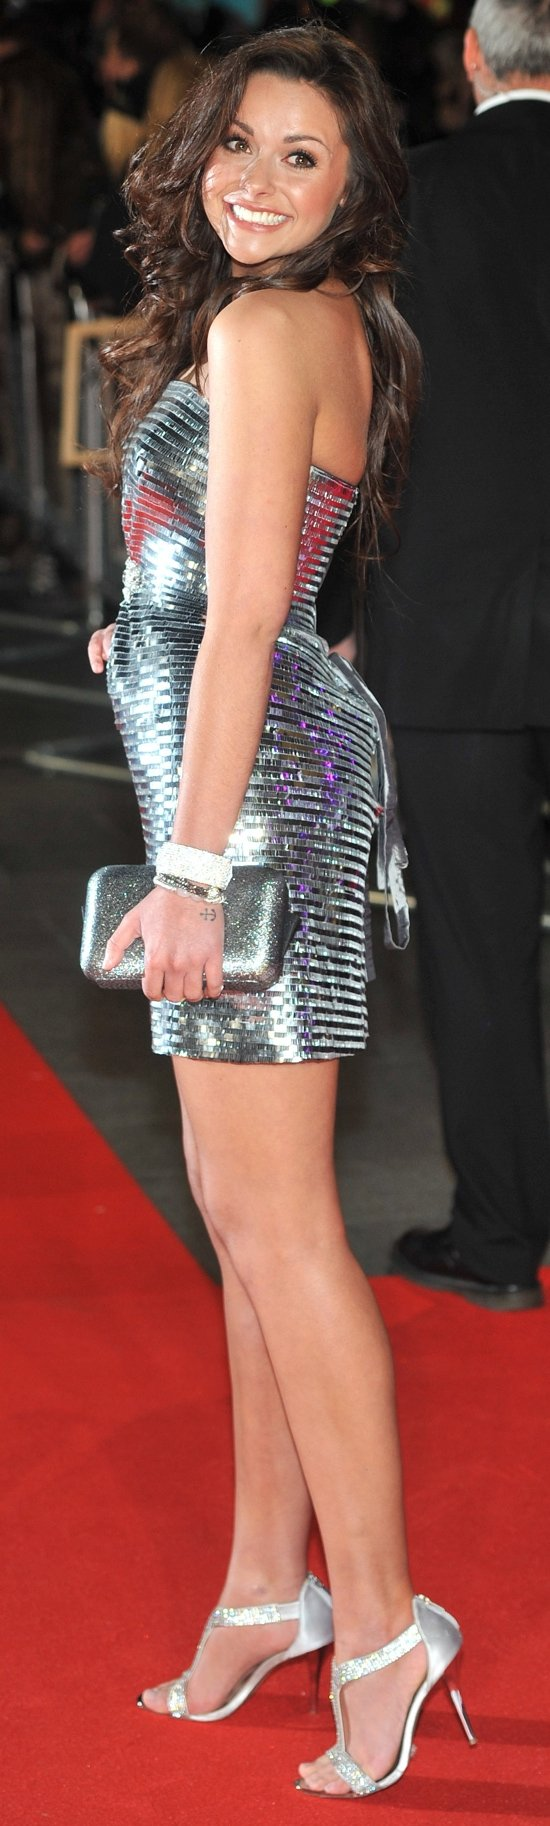 Kelsey-Beth Crossley showing off her legs in a strapless metallic dress